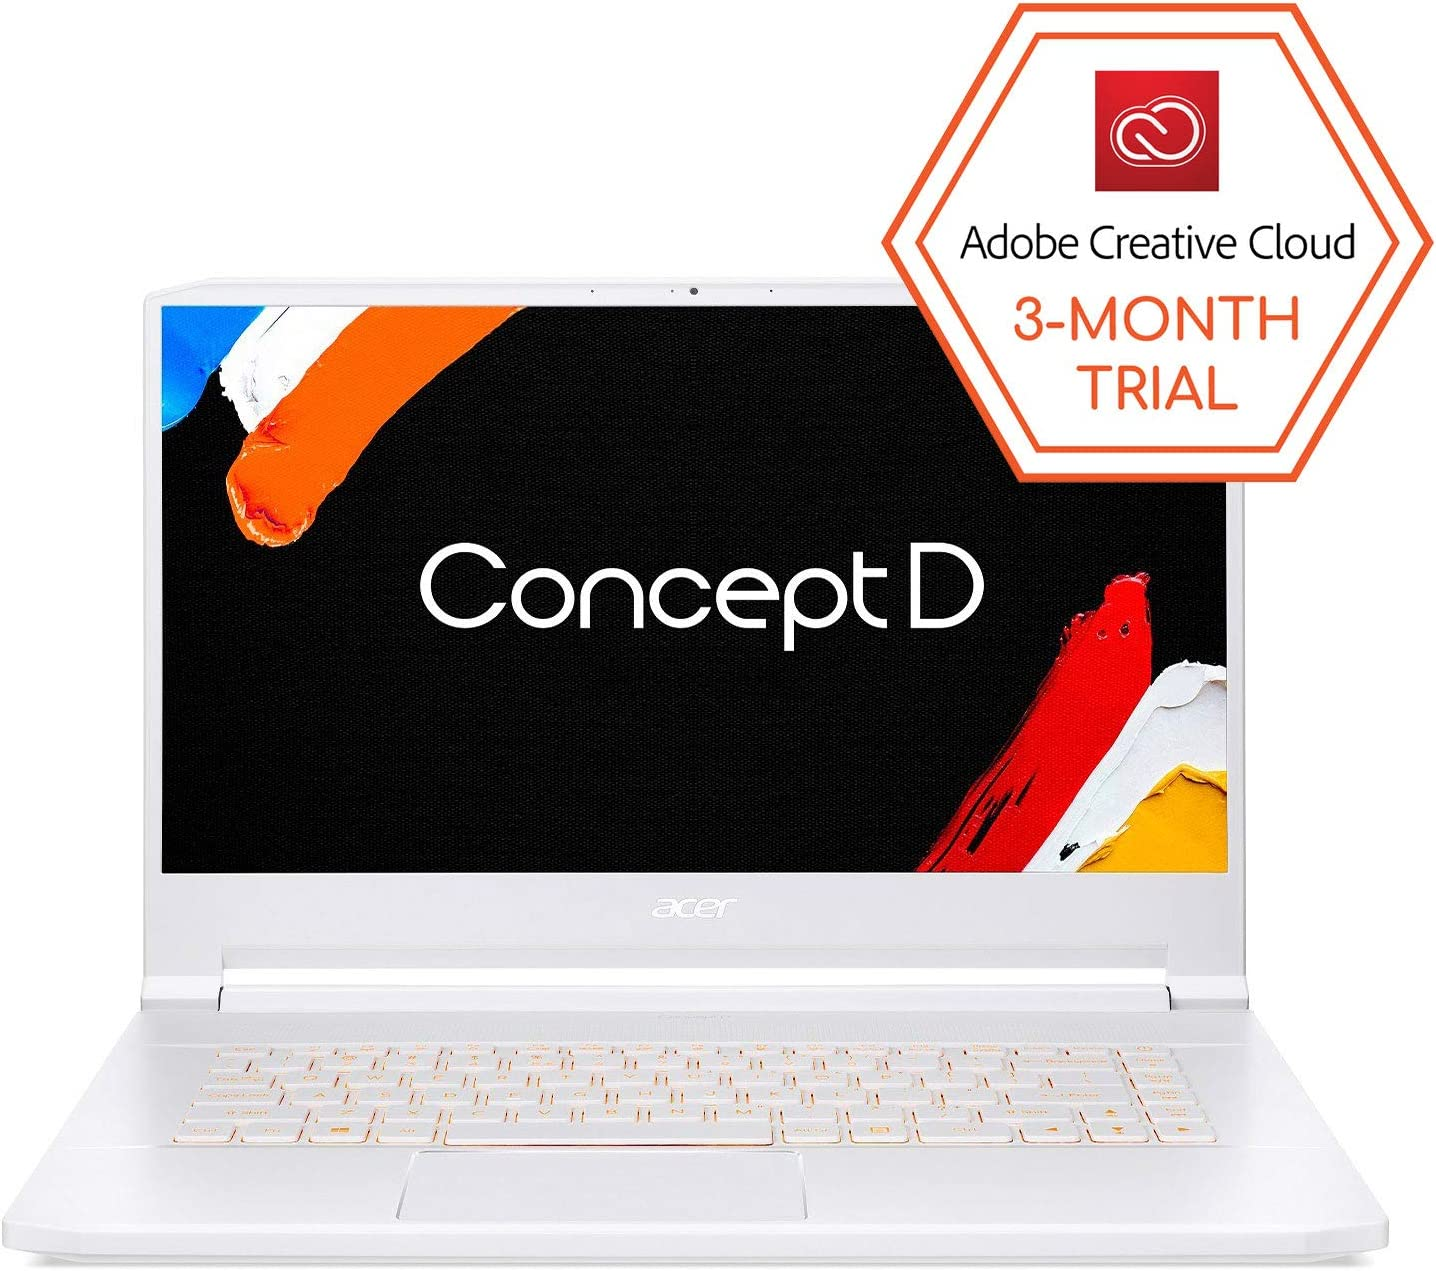 "ConceptD 7 CN715-71-73A9 Creator Laptop, Intel i7-9750H, NVIDIA GeForce RTX 2080, RTX Studio, 15.6"" 4K Ultra HD IPS, 100% Adobe RGB Color Gamut, Pantone Validated, Delta E<2, 32GB DDR4, 1TB NVMe SSD"